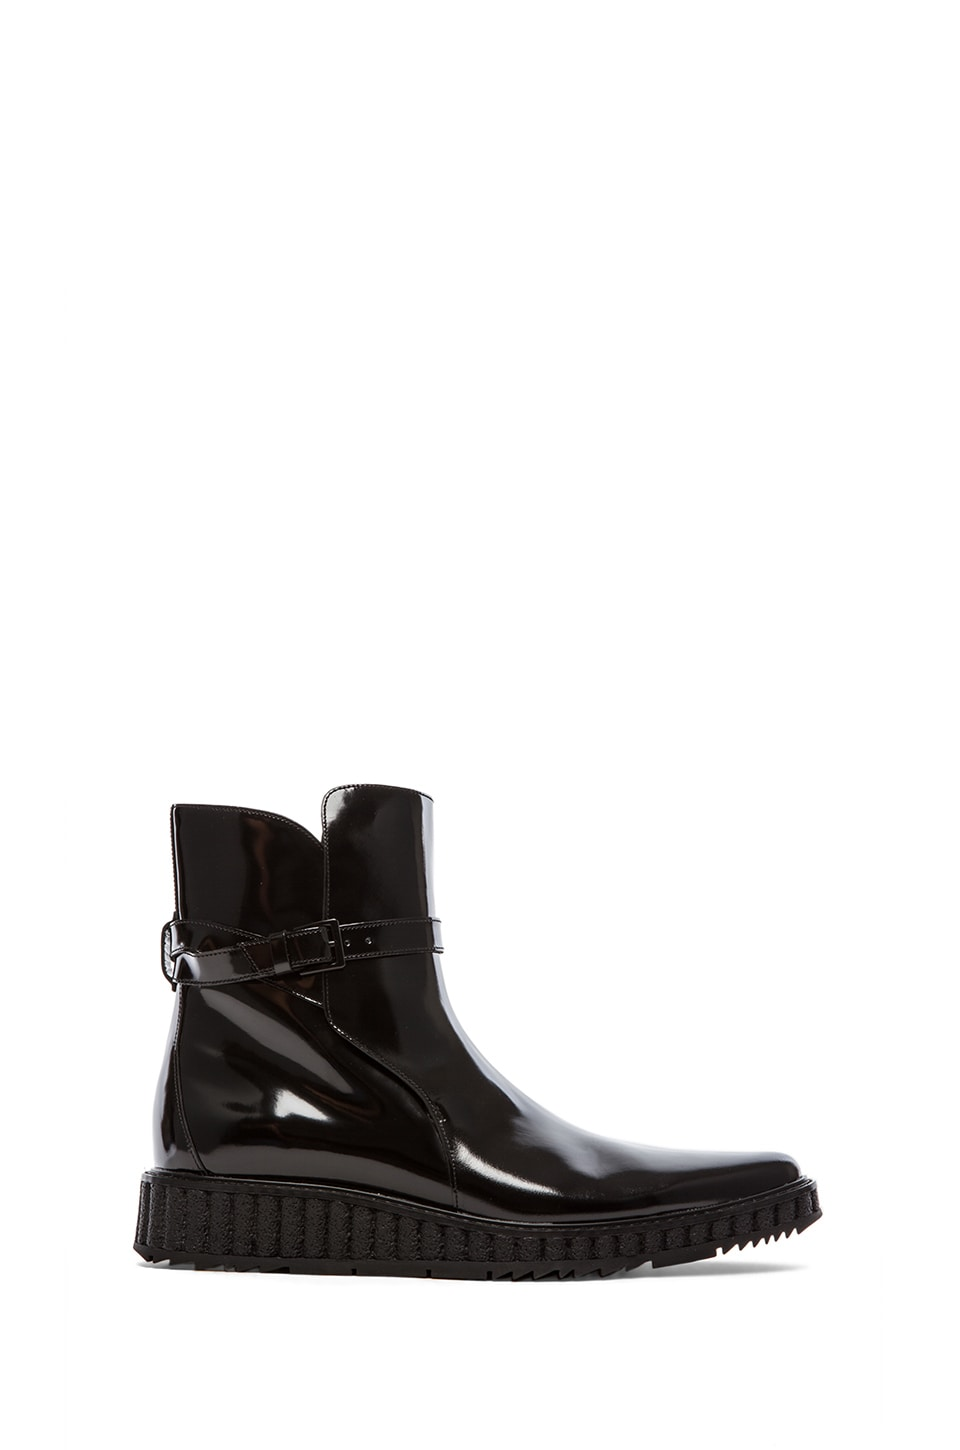 Pierre Balmain Boot in Black